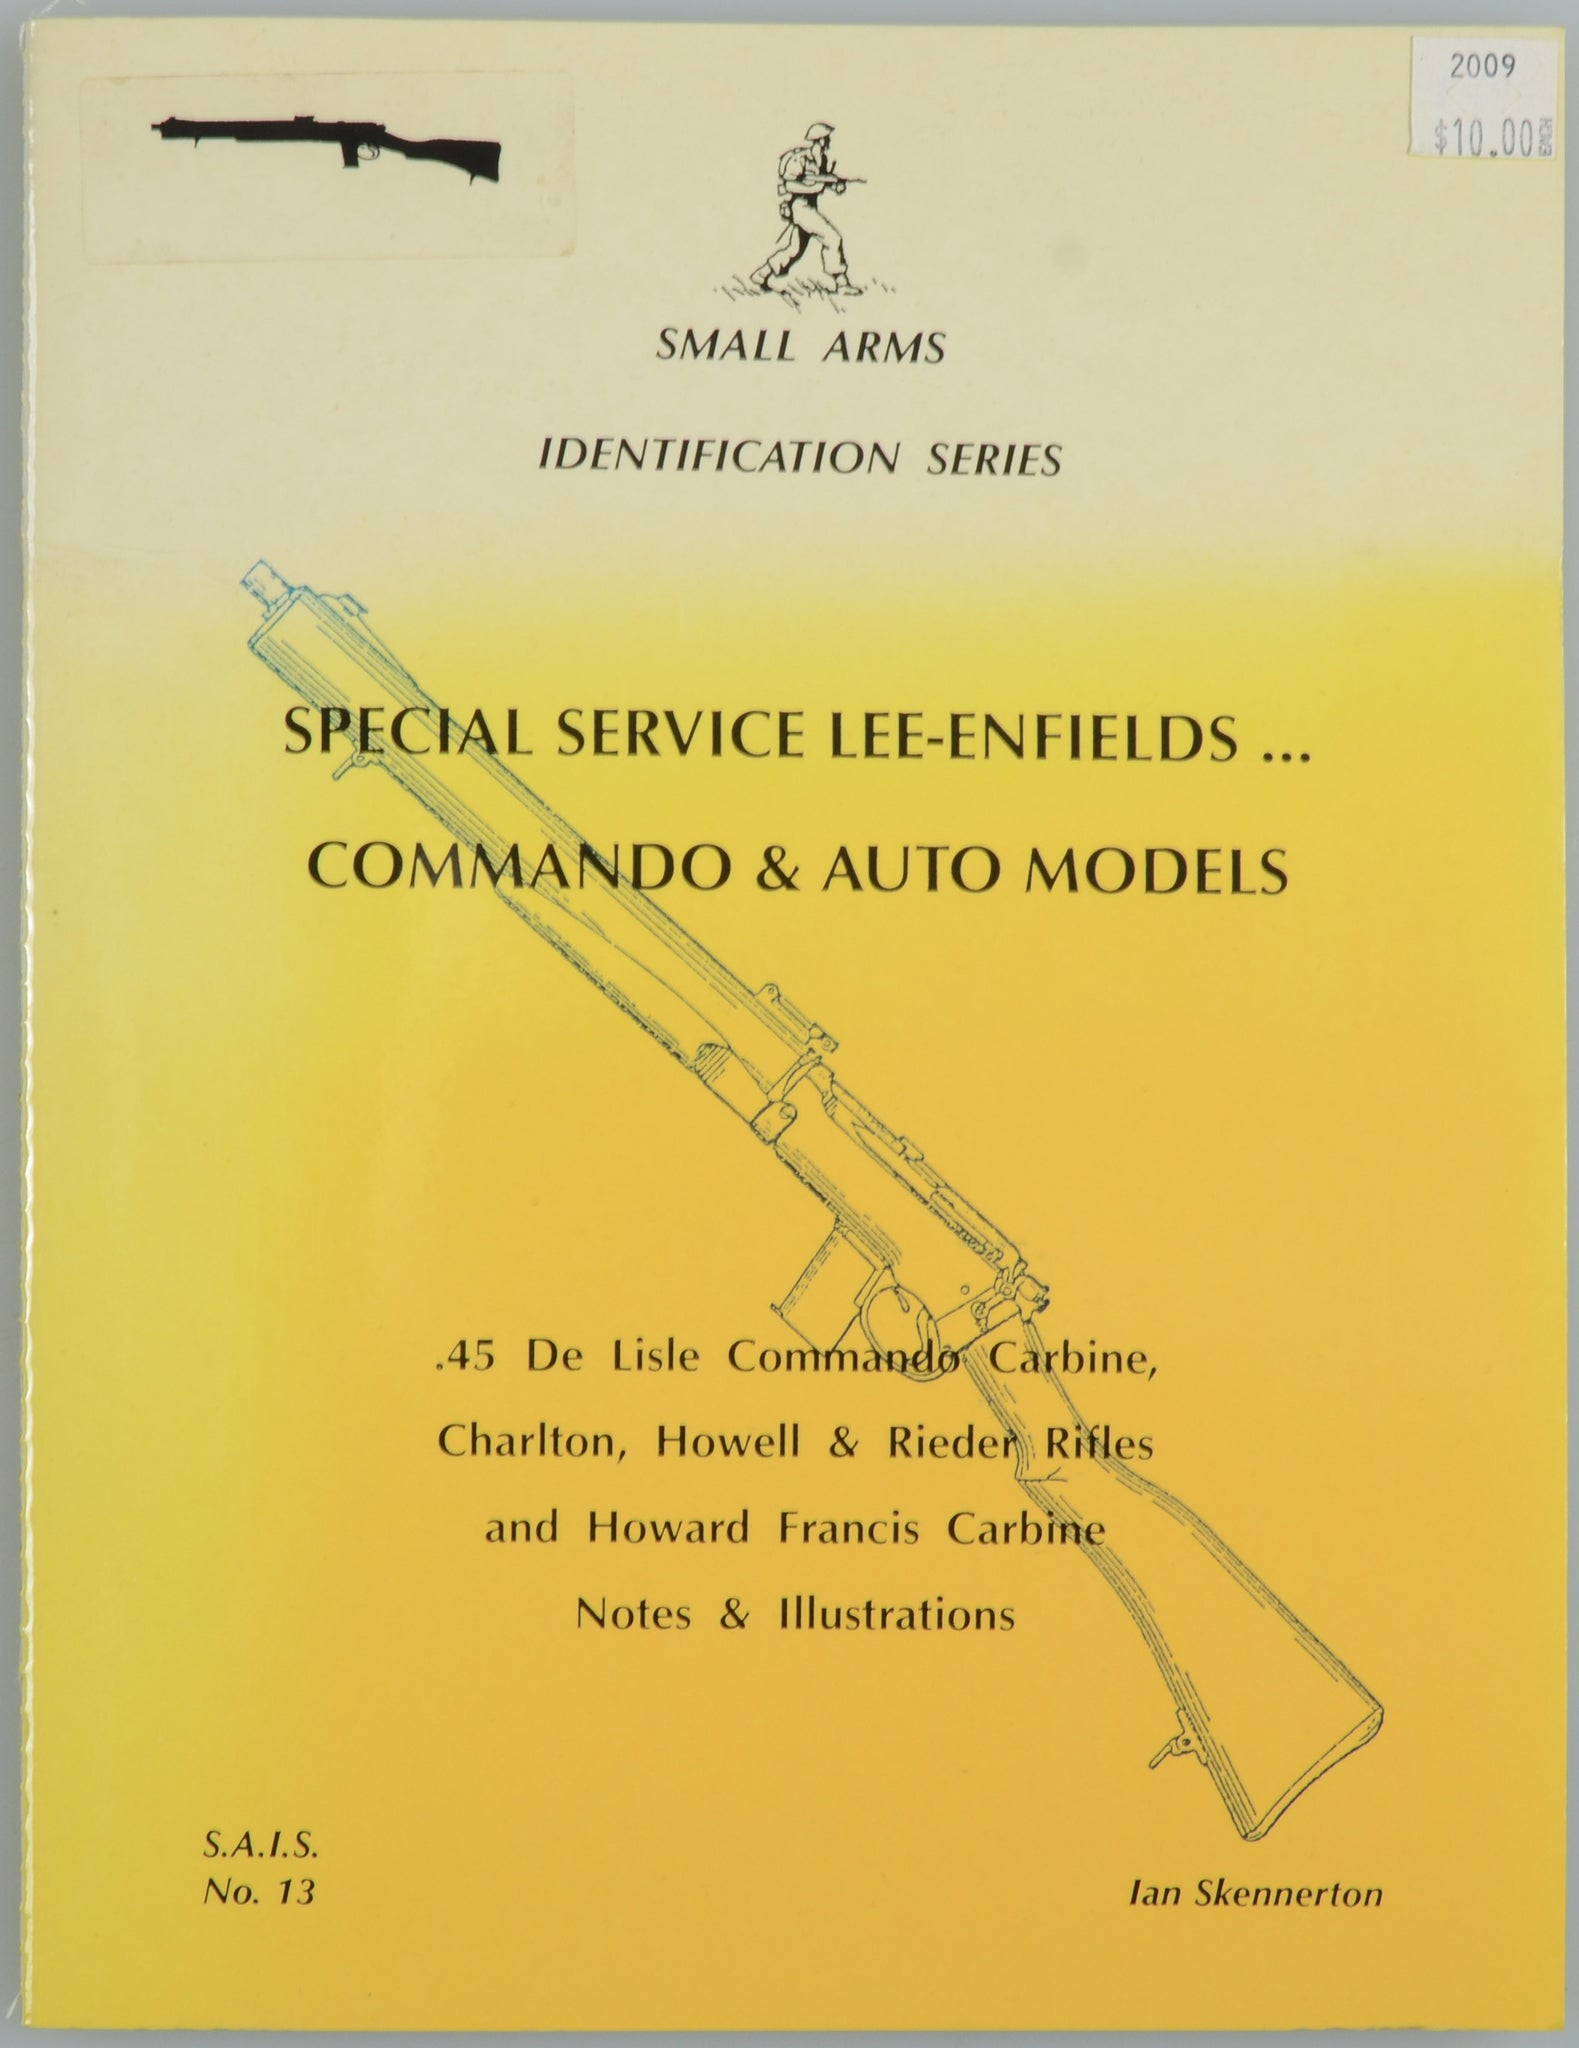 SPECIAL SERVICE LEE-ENFIELDS… COMMANDO&AUTO MODELS